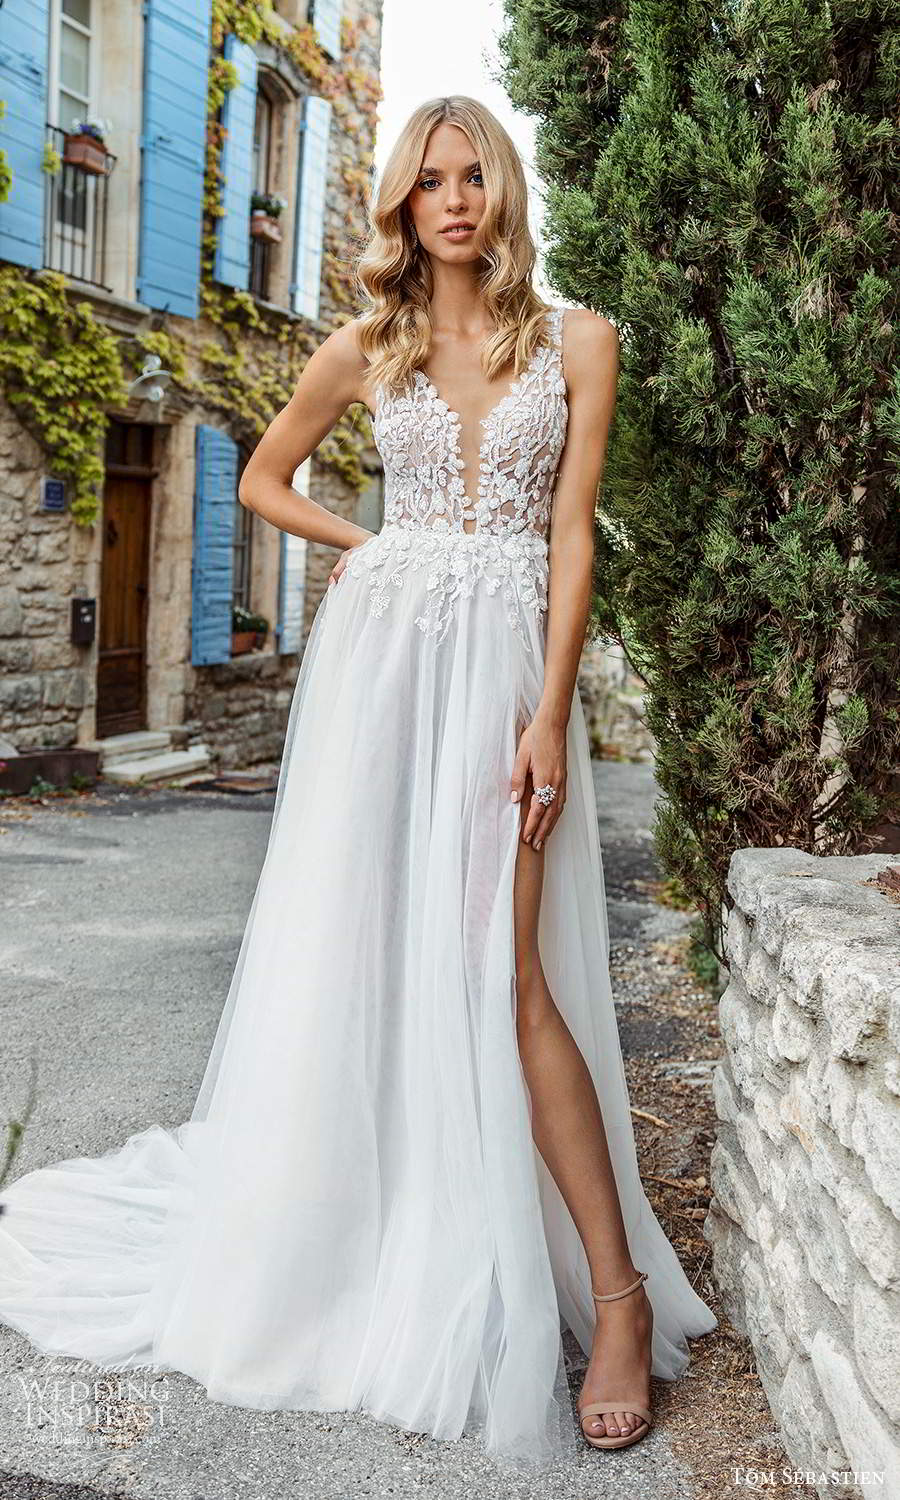 tom sebastien 2021 bridal provence sleeveless straps plunging v neckline embellished bodice a line ball gown wedding dress chapel train slit skirt (11) mv